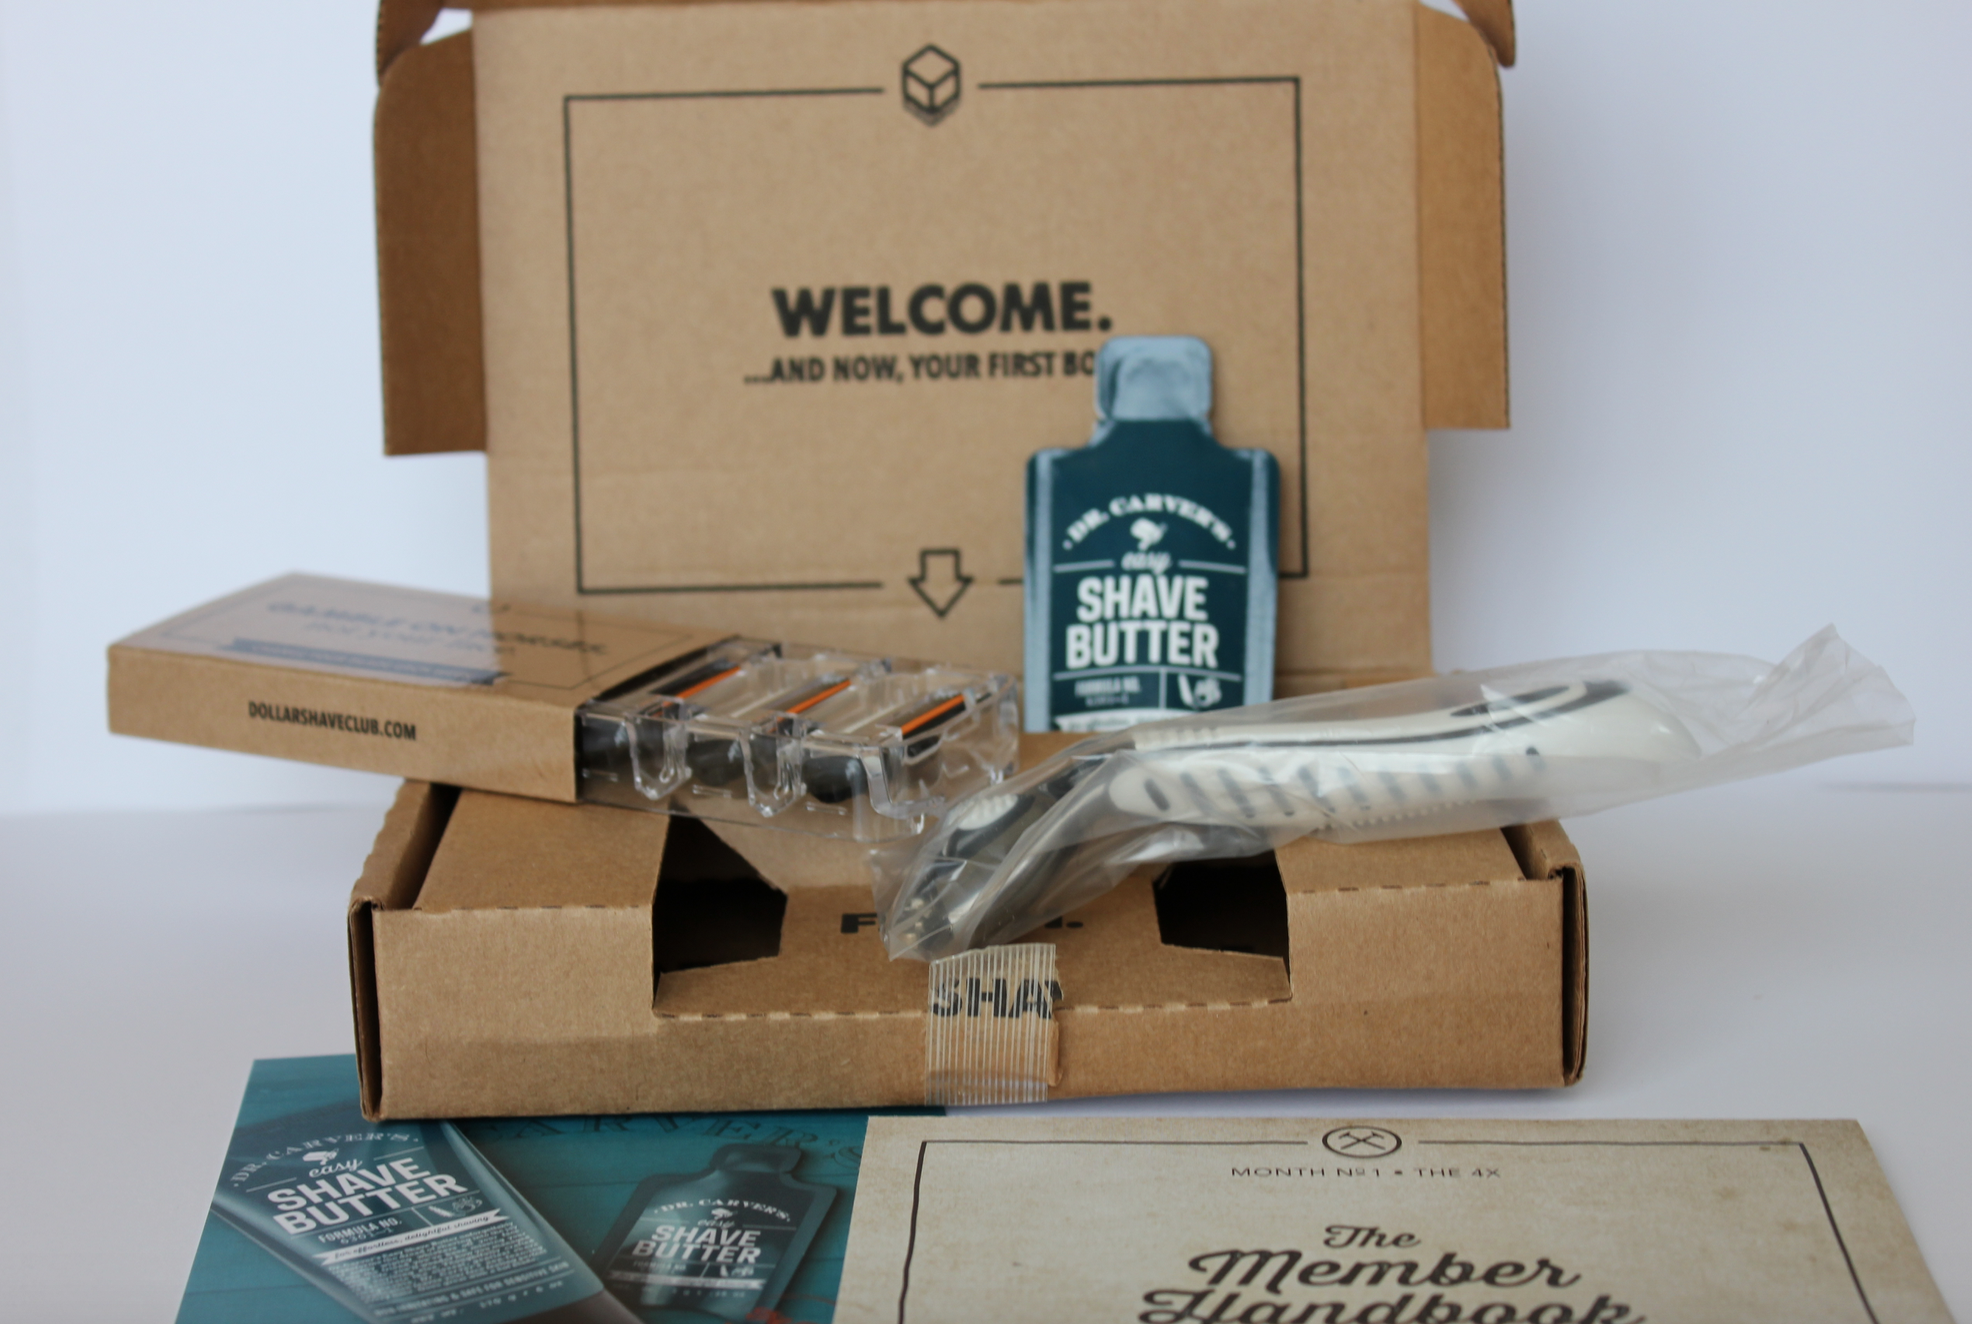 Dollar Shave Club welcome box